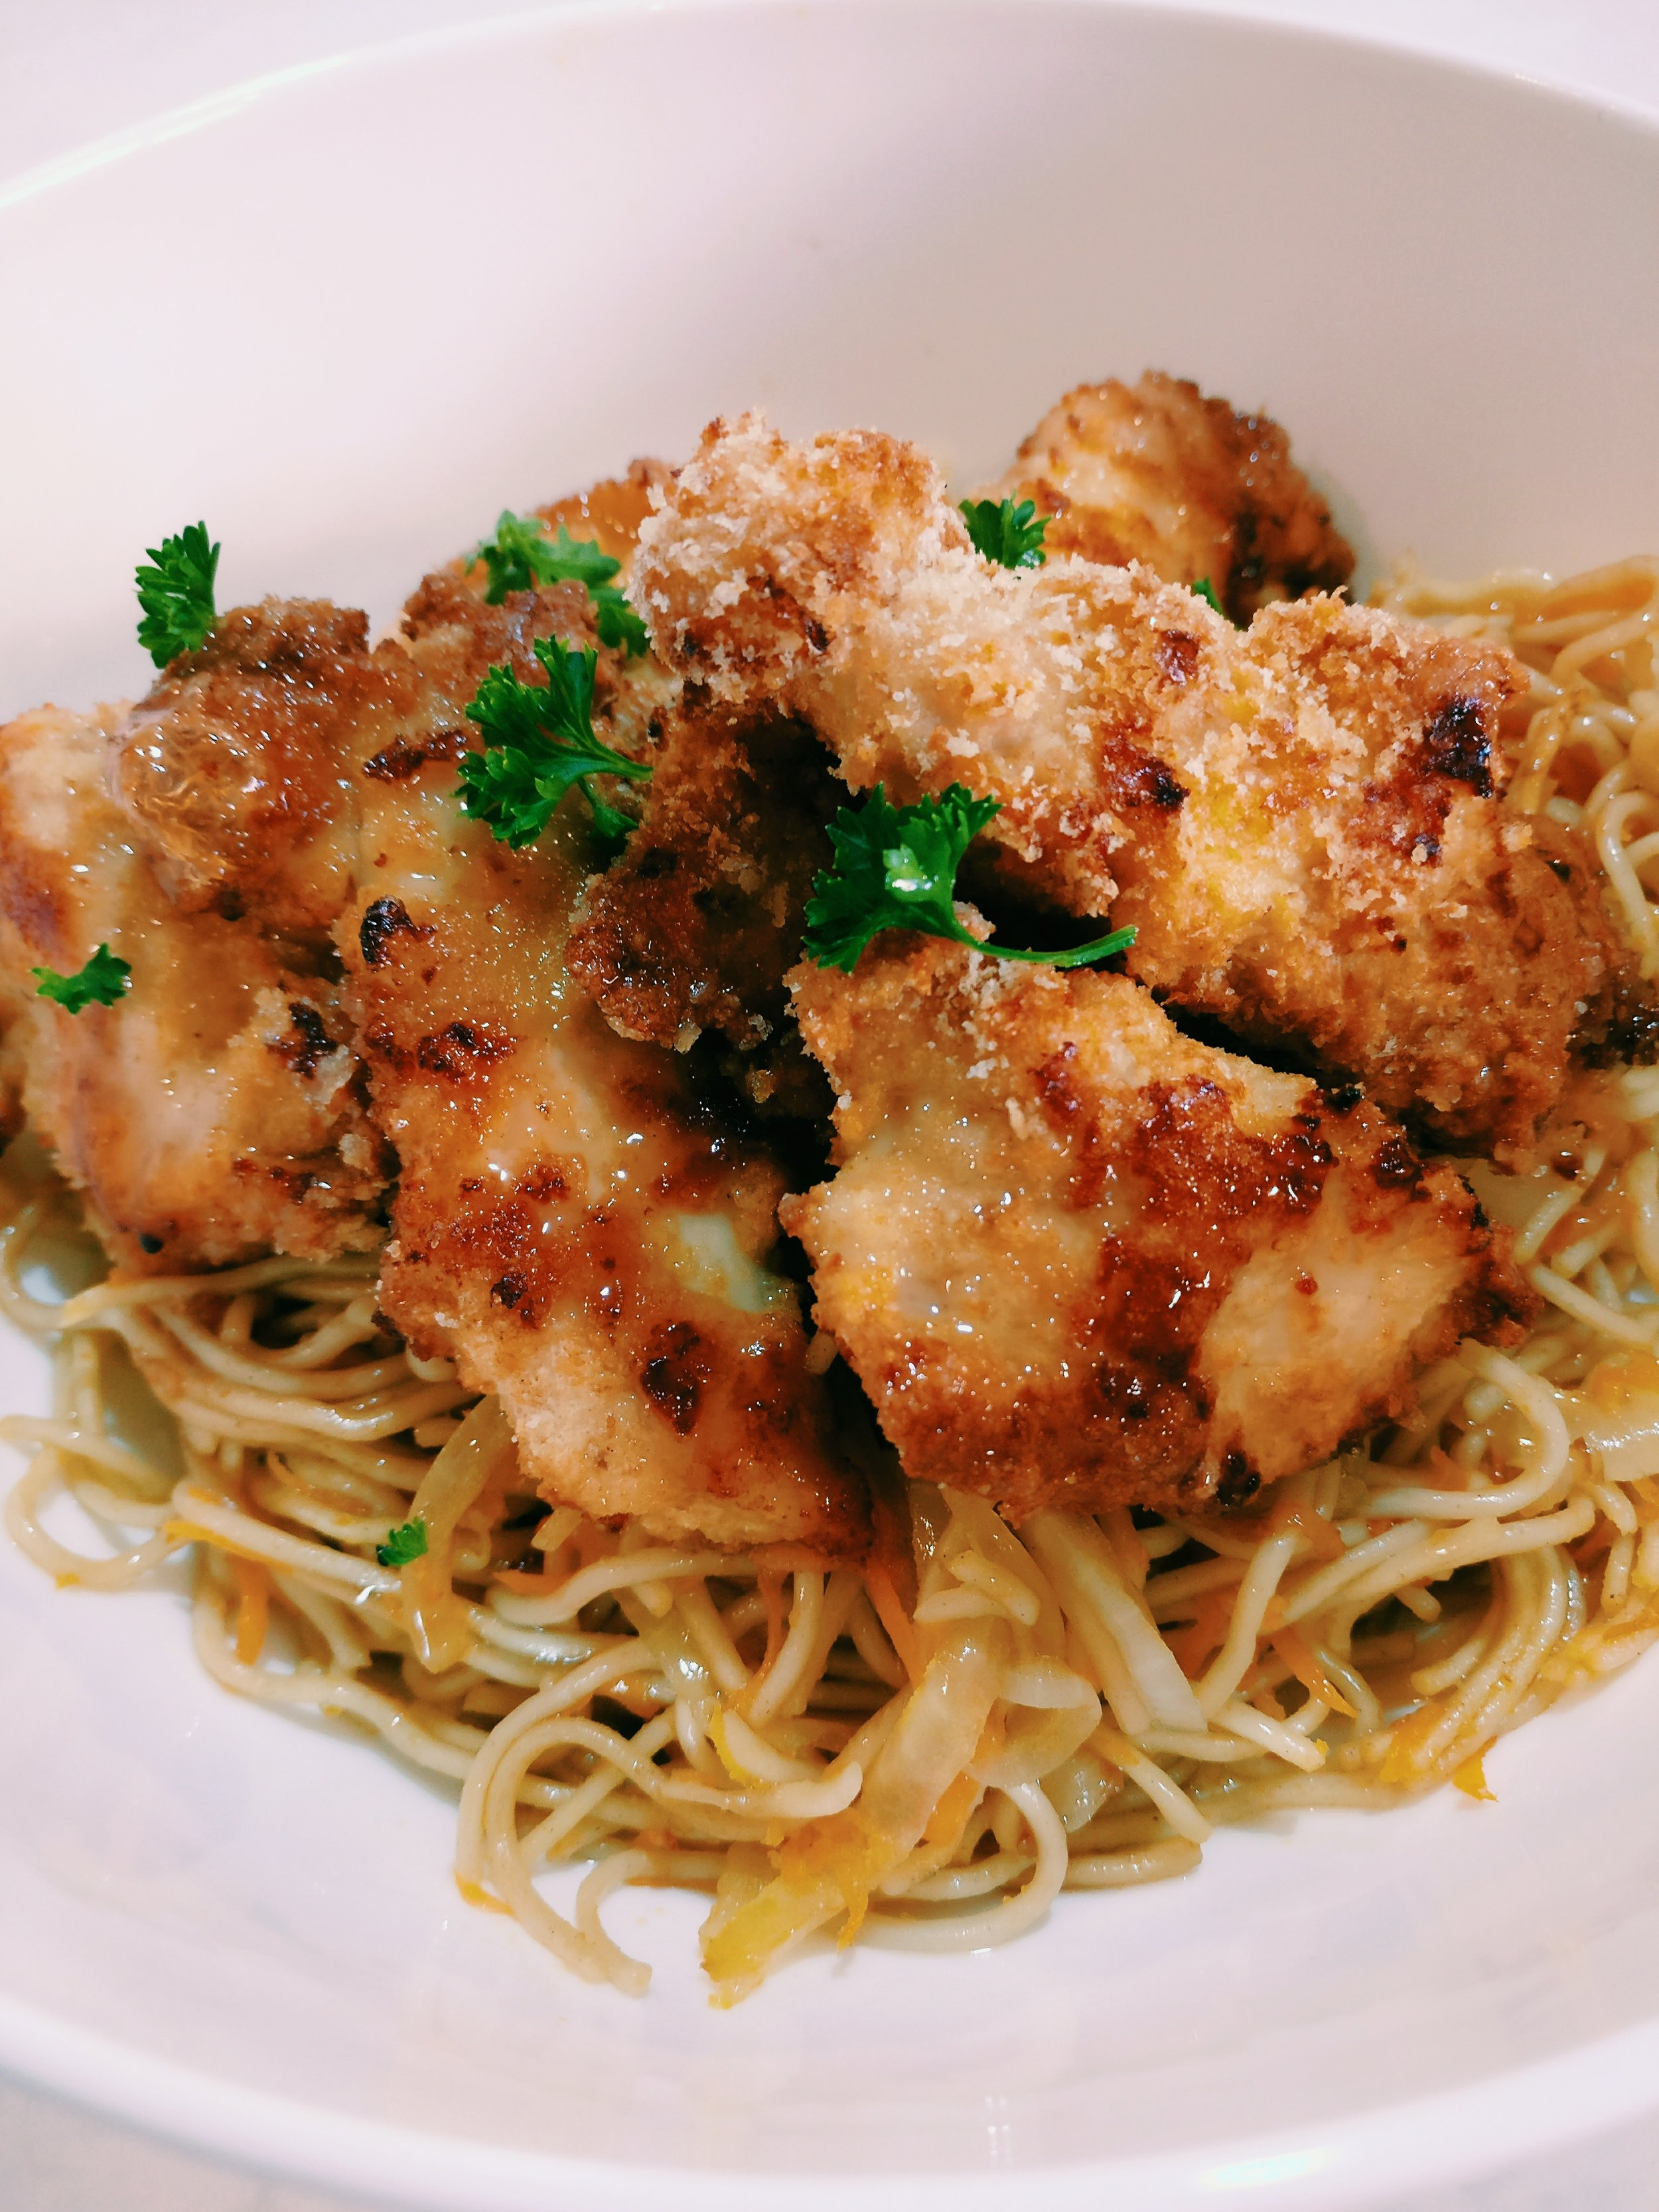 Crumbed Chicken & Noodles - Ingredients500g Chicken Breast1C Breadcrumbs2 eggs - Whisked2T oil280g Egg Noodles2T Oil (peanut oil preferred)1T Soy Sauce2 Carrots - Finely Grated1 Onion - Finely Sliced1/2C Water1/2C Malt Vinegar1/2C Sugar1 Garlic Clove1/2C Water2T Corn Flour1/2t Soy SauceMethod1. Slice the chicken breast into tender strips2. Dip the chicken tenders into the whisked egg and then into the breadcrumbs3. Place the chicken on a baking tray and cover lightly with oil, bake for 25-30 mins at 180 or until golden brown.4. Boil the egg noodles according to packet directions, once cooked; drain the noodles and fry them in the oil in a large frying pan for 2-3 minutes on a medium heat5. Add the soy sauce to the noodles along with the onion and carrot, cook for 2-3 minutes6. In a saucepan; add 1/2 water, malt vinegar, sugar and garlic clove and bring to the boil7. Combine the corn flour with the extra 1/2C water and soy sauce whisk with a fork. Add this to the saucepan and bring back to the boil until it thickens to the desired consistencyTo plate: place the egg noodles in a bowl, top with the crumbed chicken and finally top with the sweet and sour sauce.